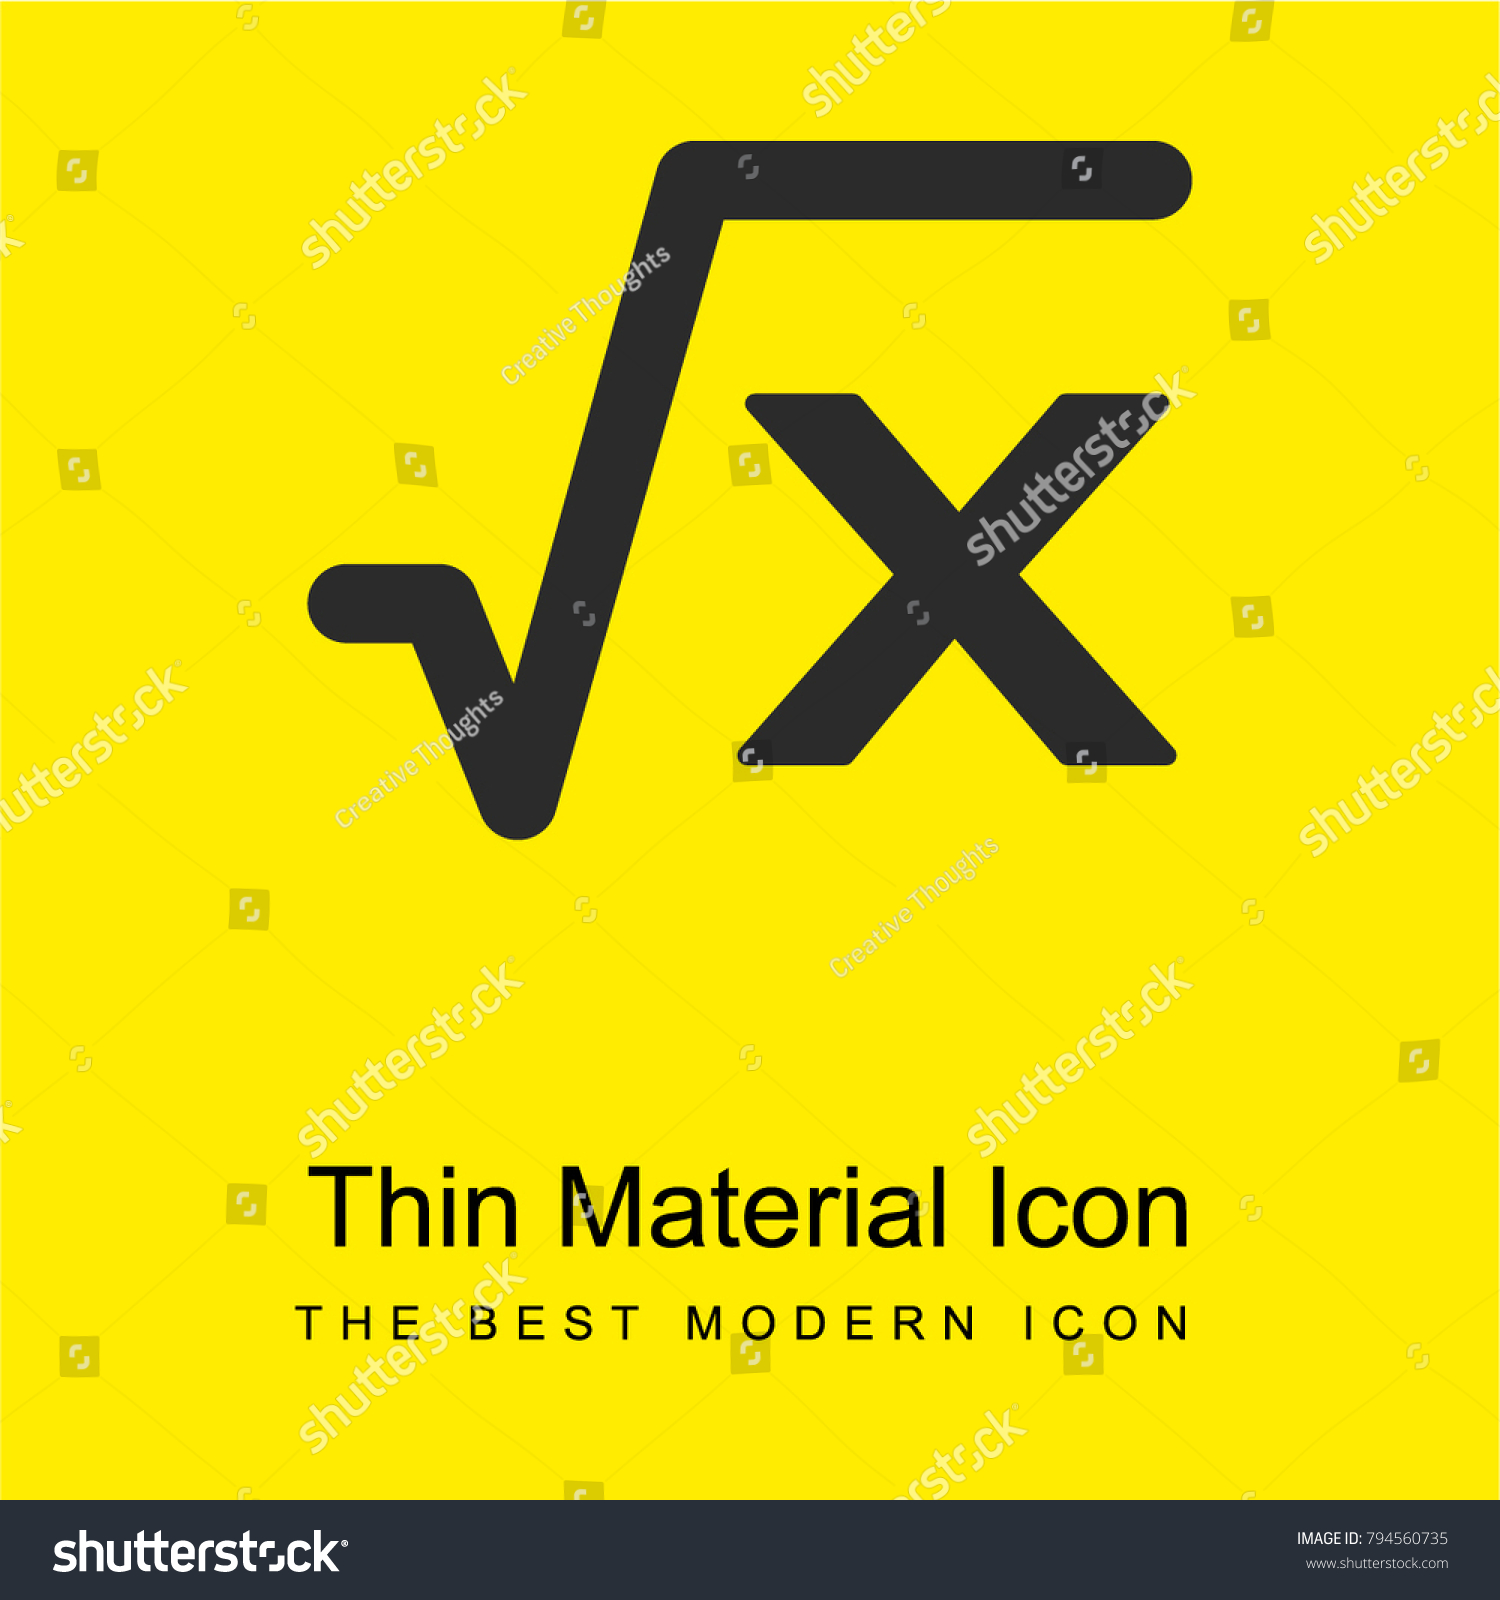 Square root x math formula bright stock vector 794560735 shutterstock square root of x math formula bright yellow material minimal icon or logo design biocorpaavc Image collections